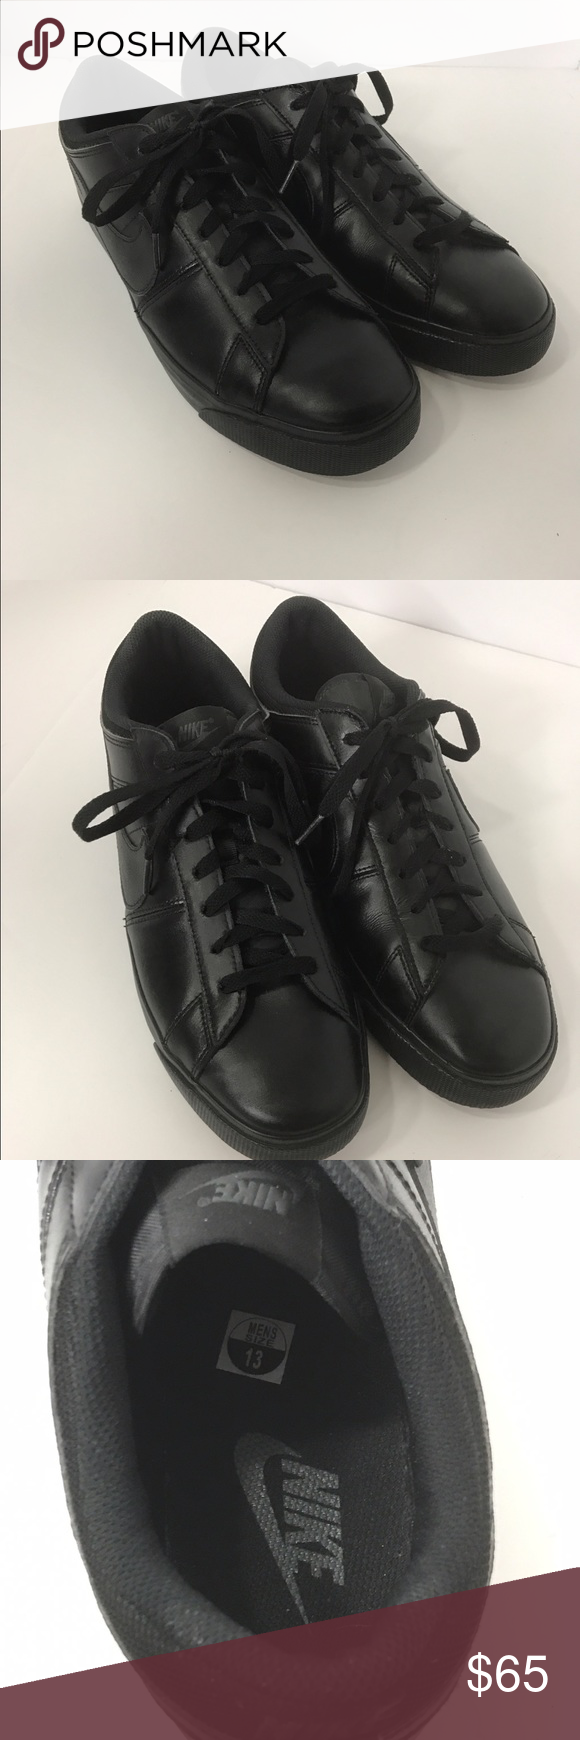 22b8d5f1fae2 NIKE Men s MATCH SUPREME LEATHER Black SHOES US 13 Nike Match Supreme Black Leather  Shoes Mens Size 13 631656-020 Excellent Condition Only been worn a Few ...